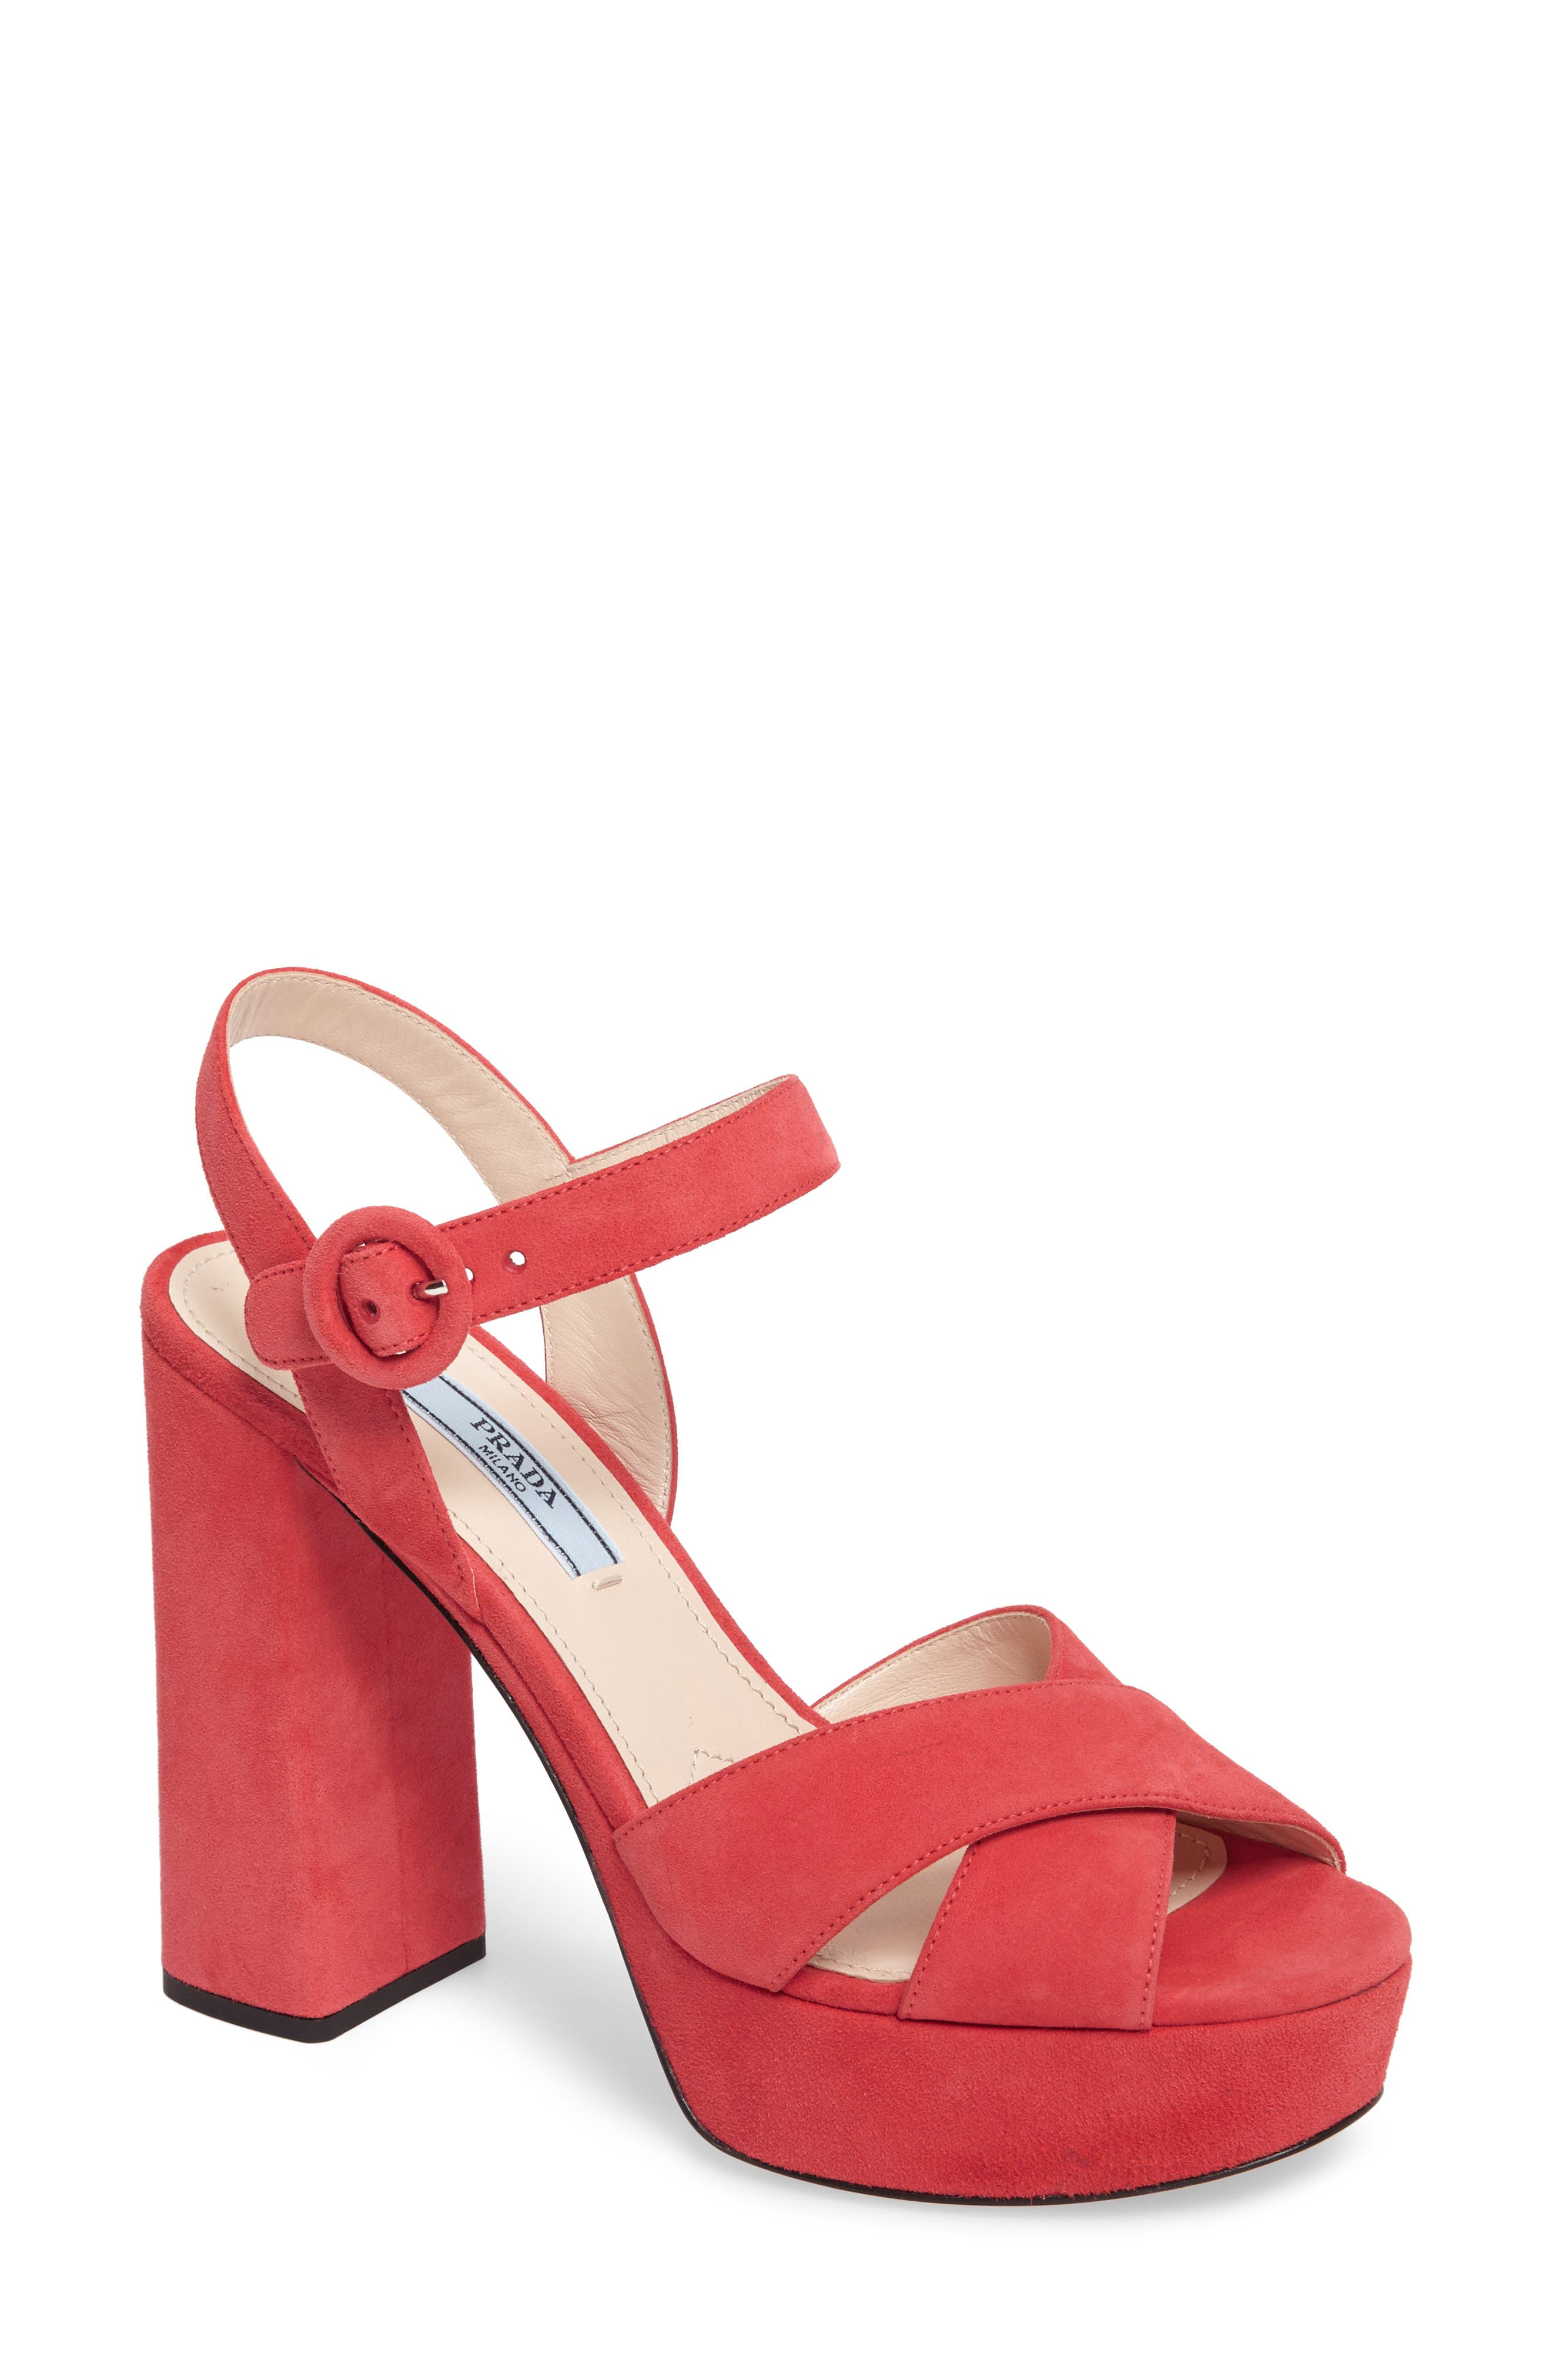 Block Heel Platform Sandal,                             Main thumbnail 1, color,                             Corallo